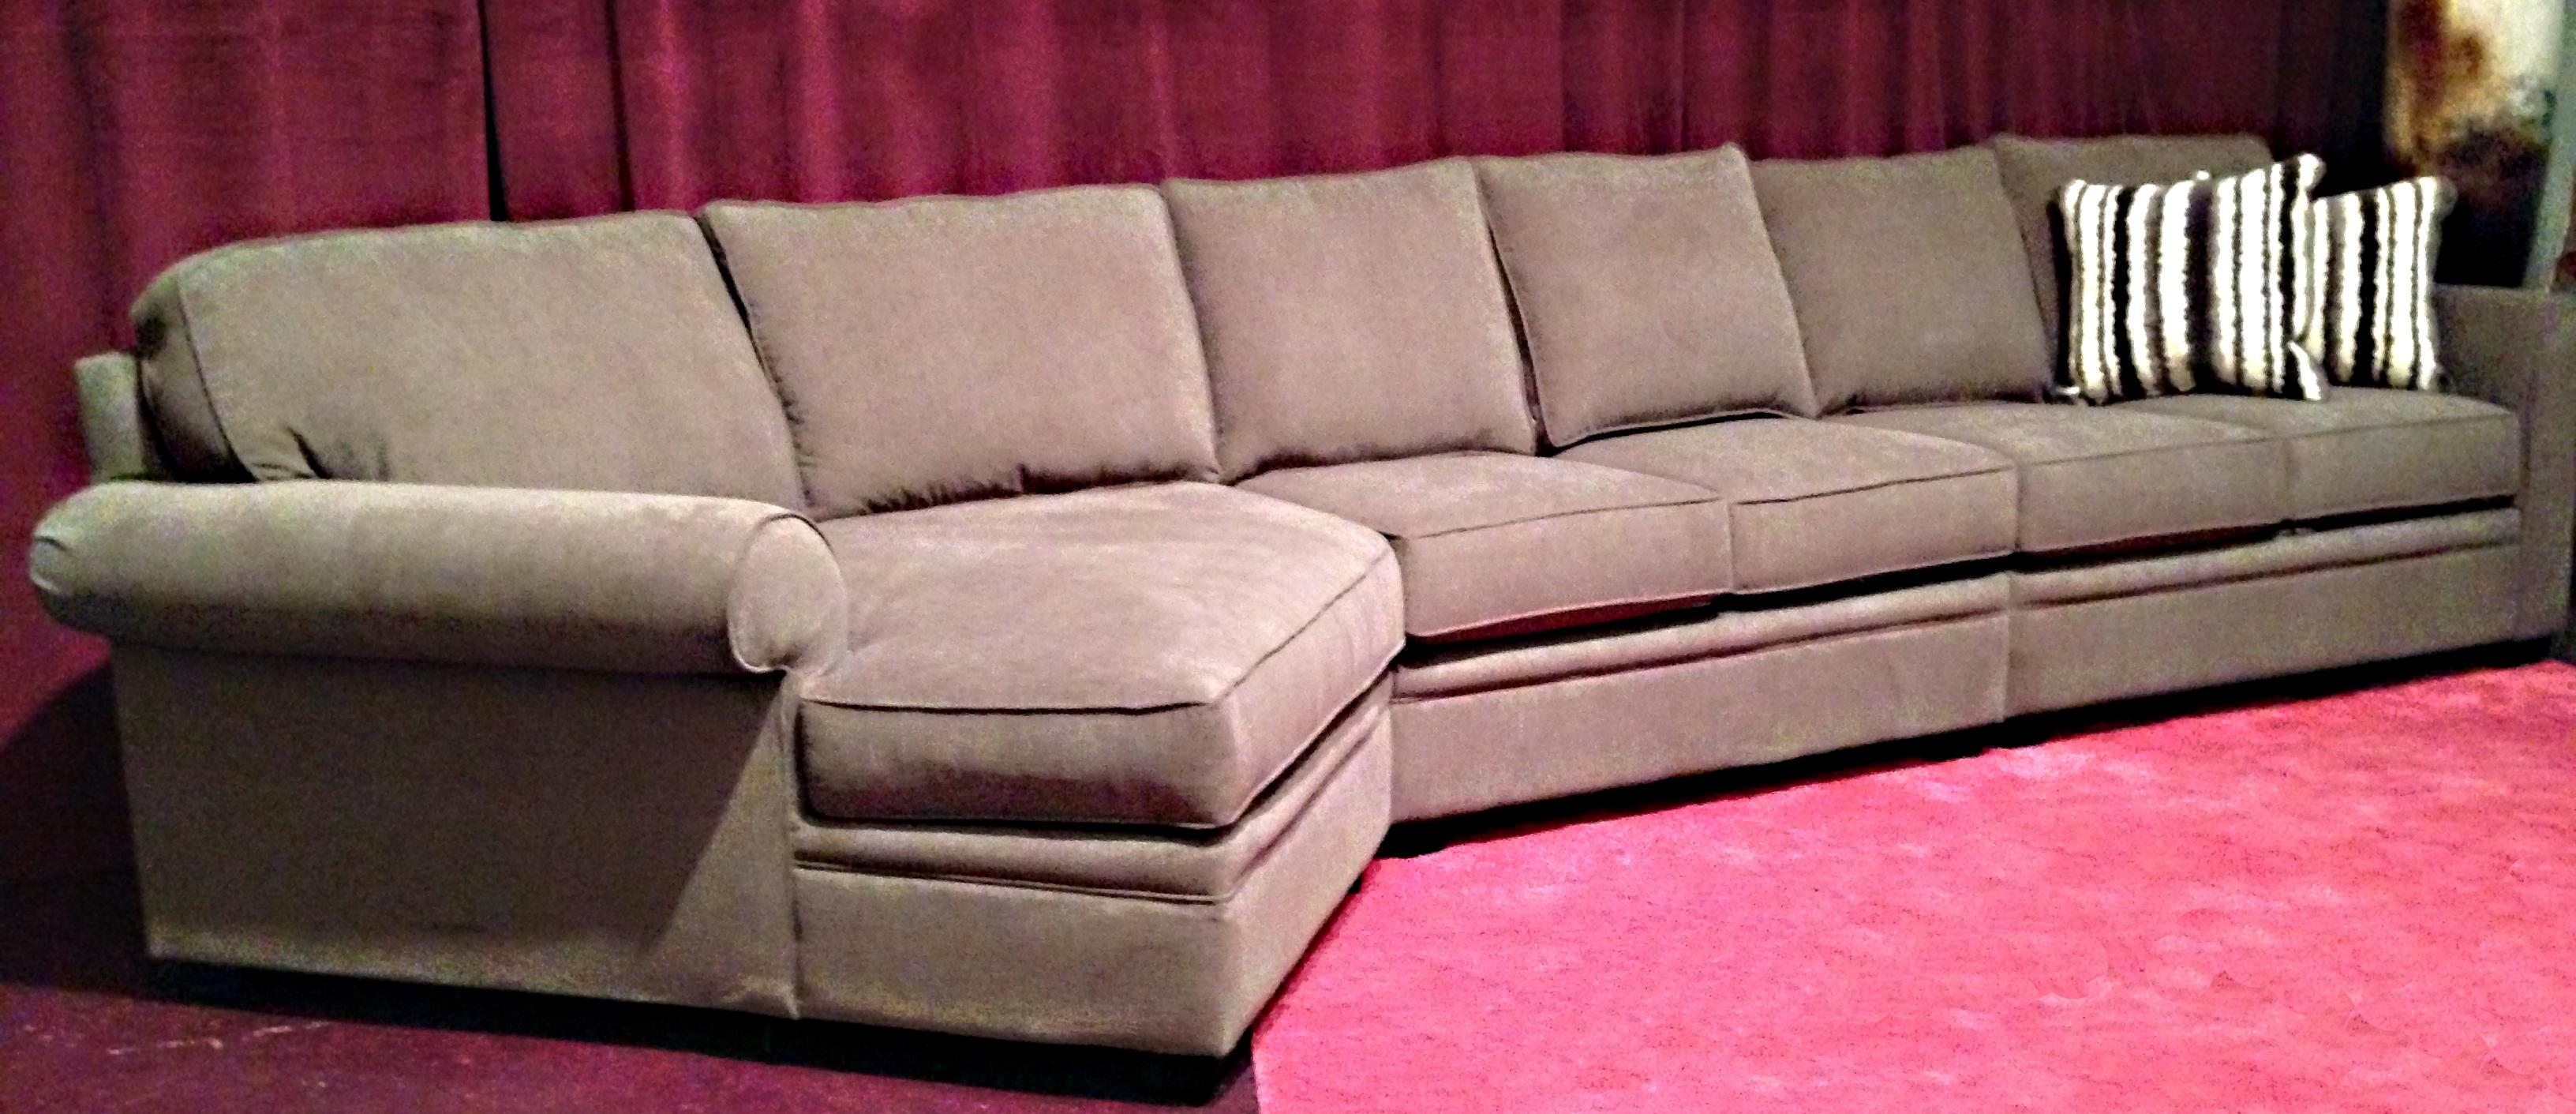 Sofas: Oversized Sofas That Are Ready For Hours Of Lounging Time Within Sectional With Oversized Ottoman (View 17 of 20)